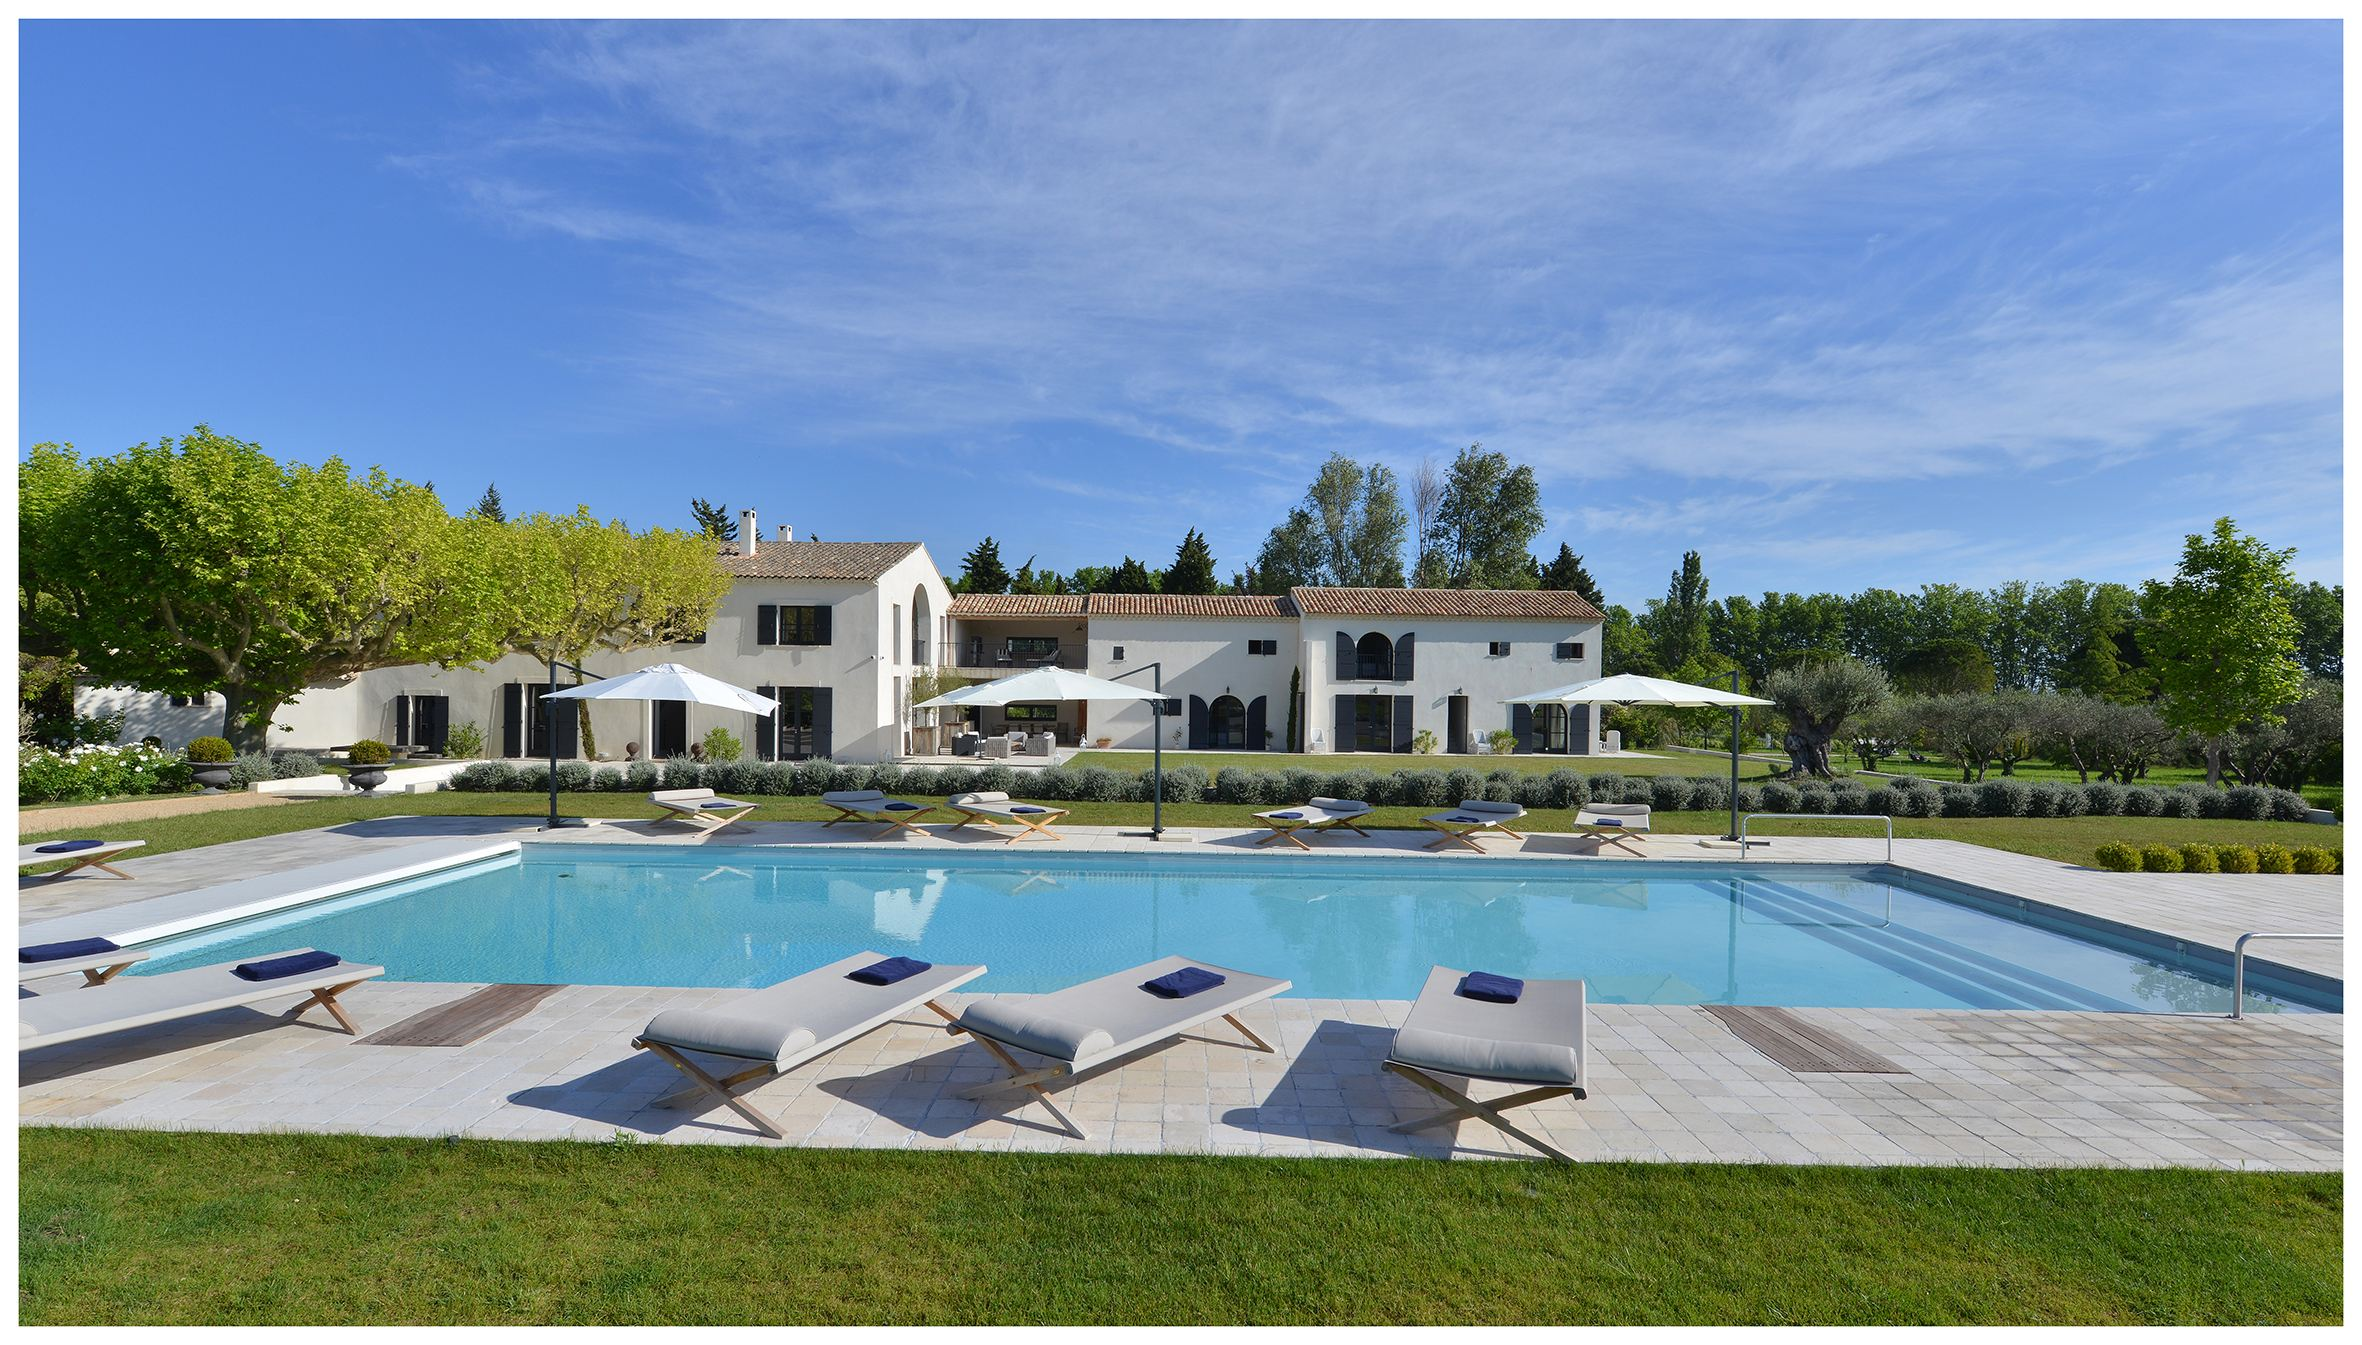 Single Family Home for Sale at Exceptional property in Saint Rémy de Provence Other Provence-Alpes-Cote D'Azur, Provence-Alpes-Cote D'Azur, 13210 France